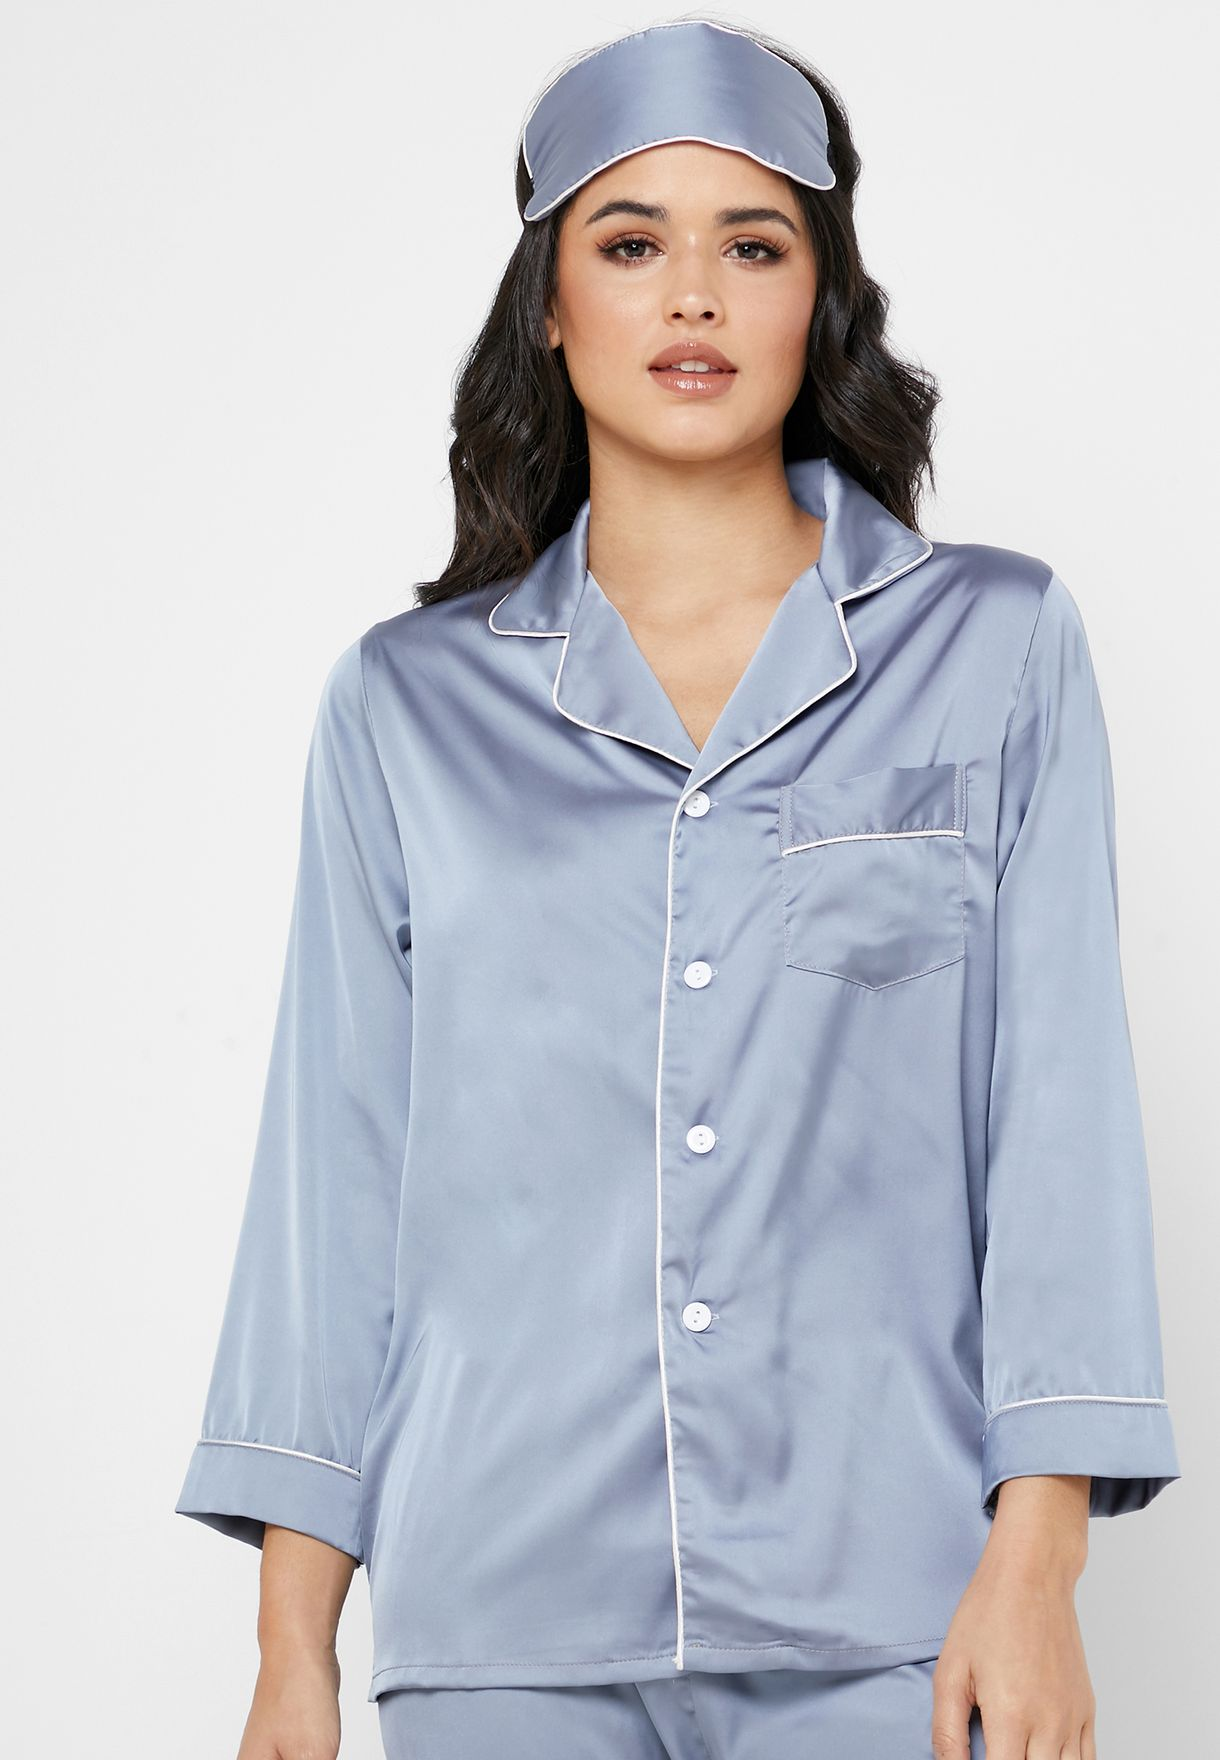 Satin w/ Eye Mask Shirt Pyjama Set